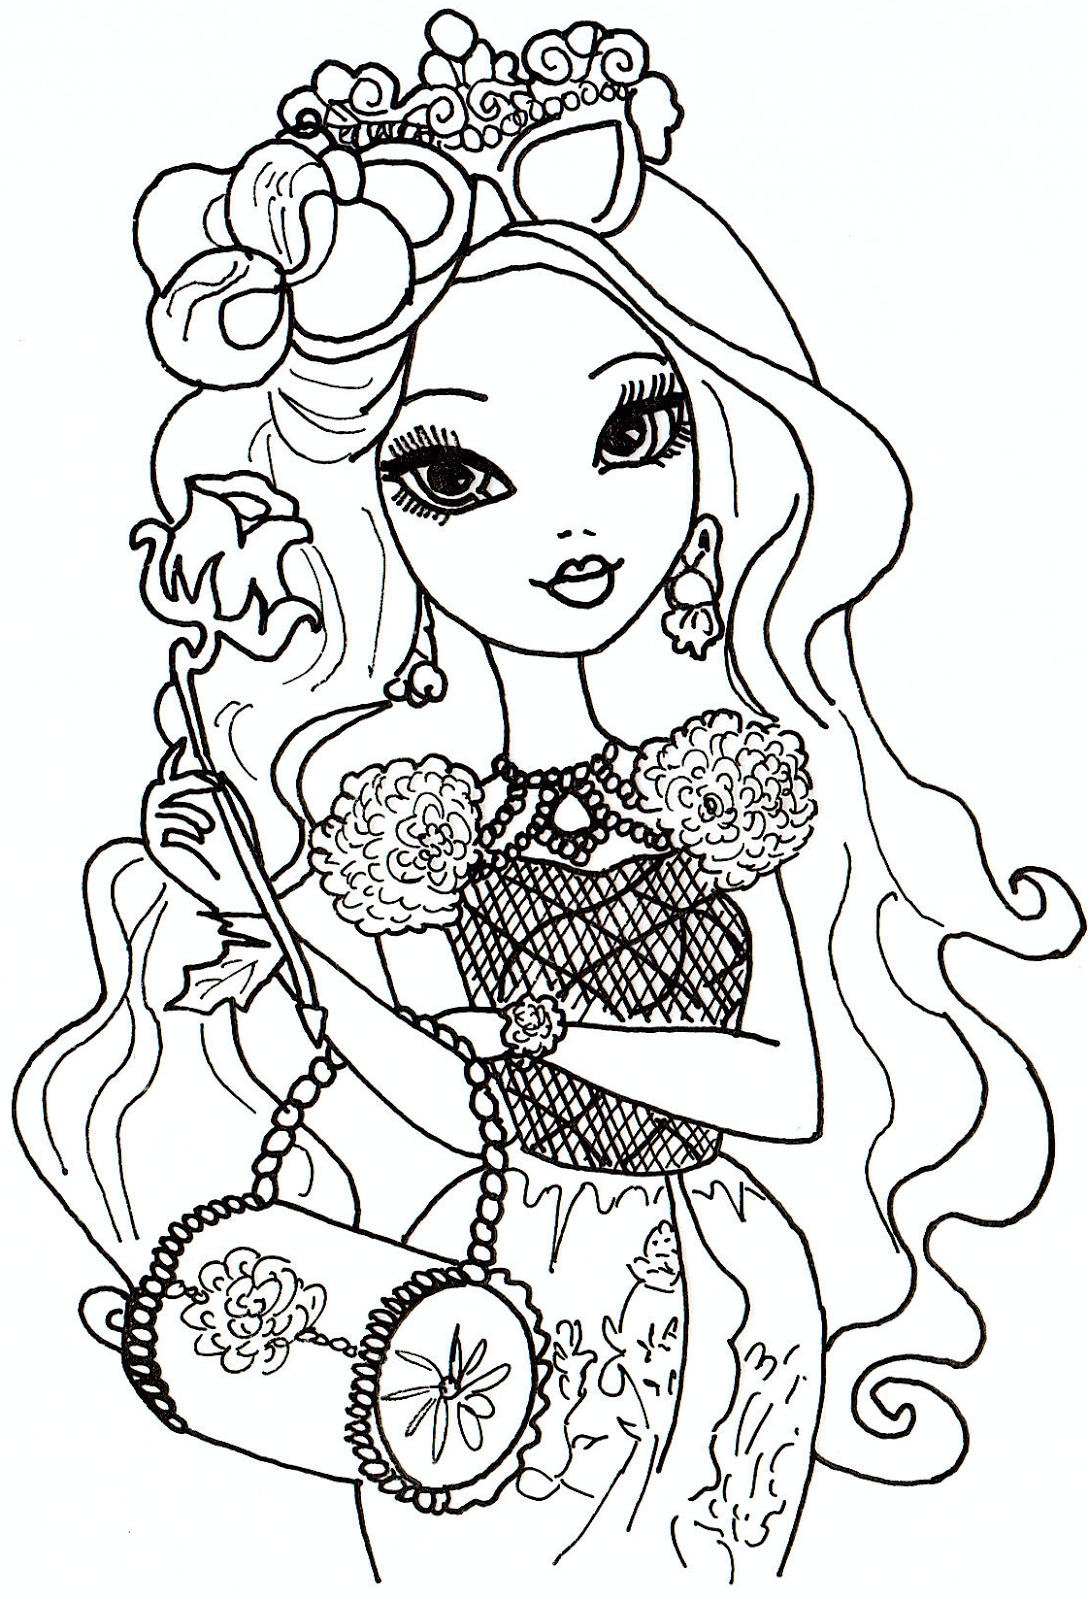 All About Ever After High Dolls: June 2013